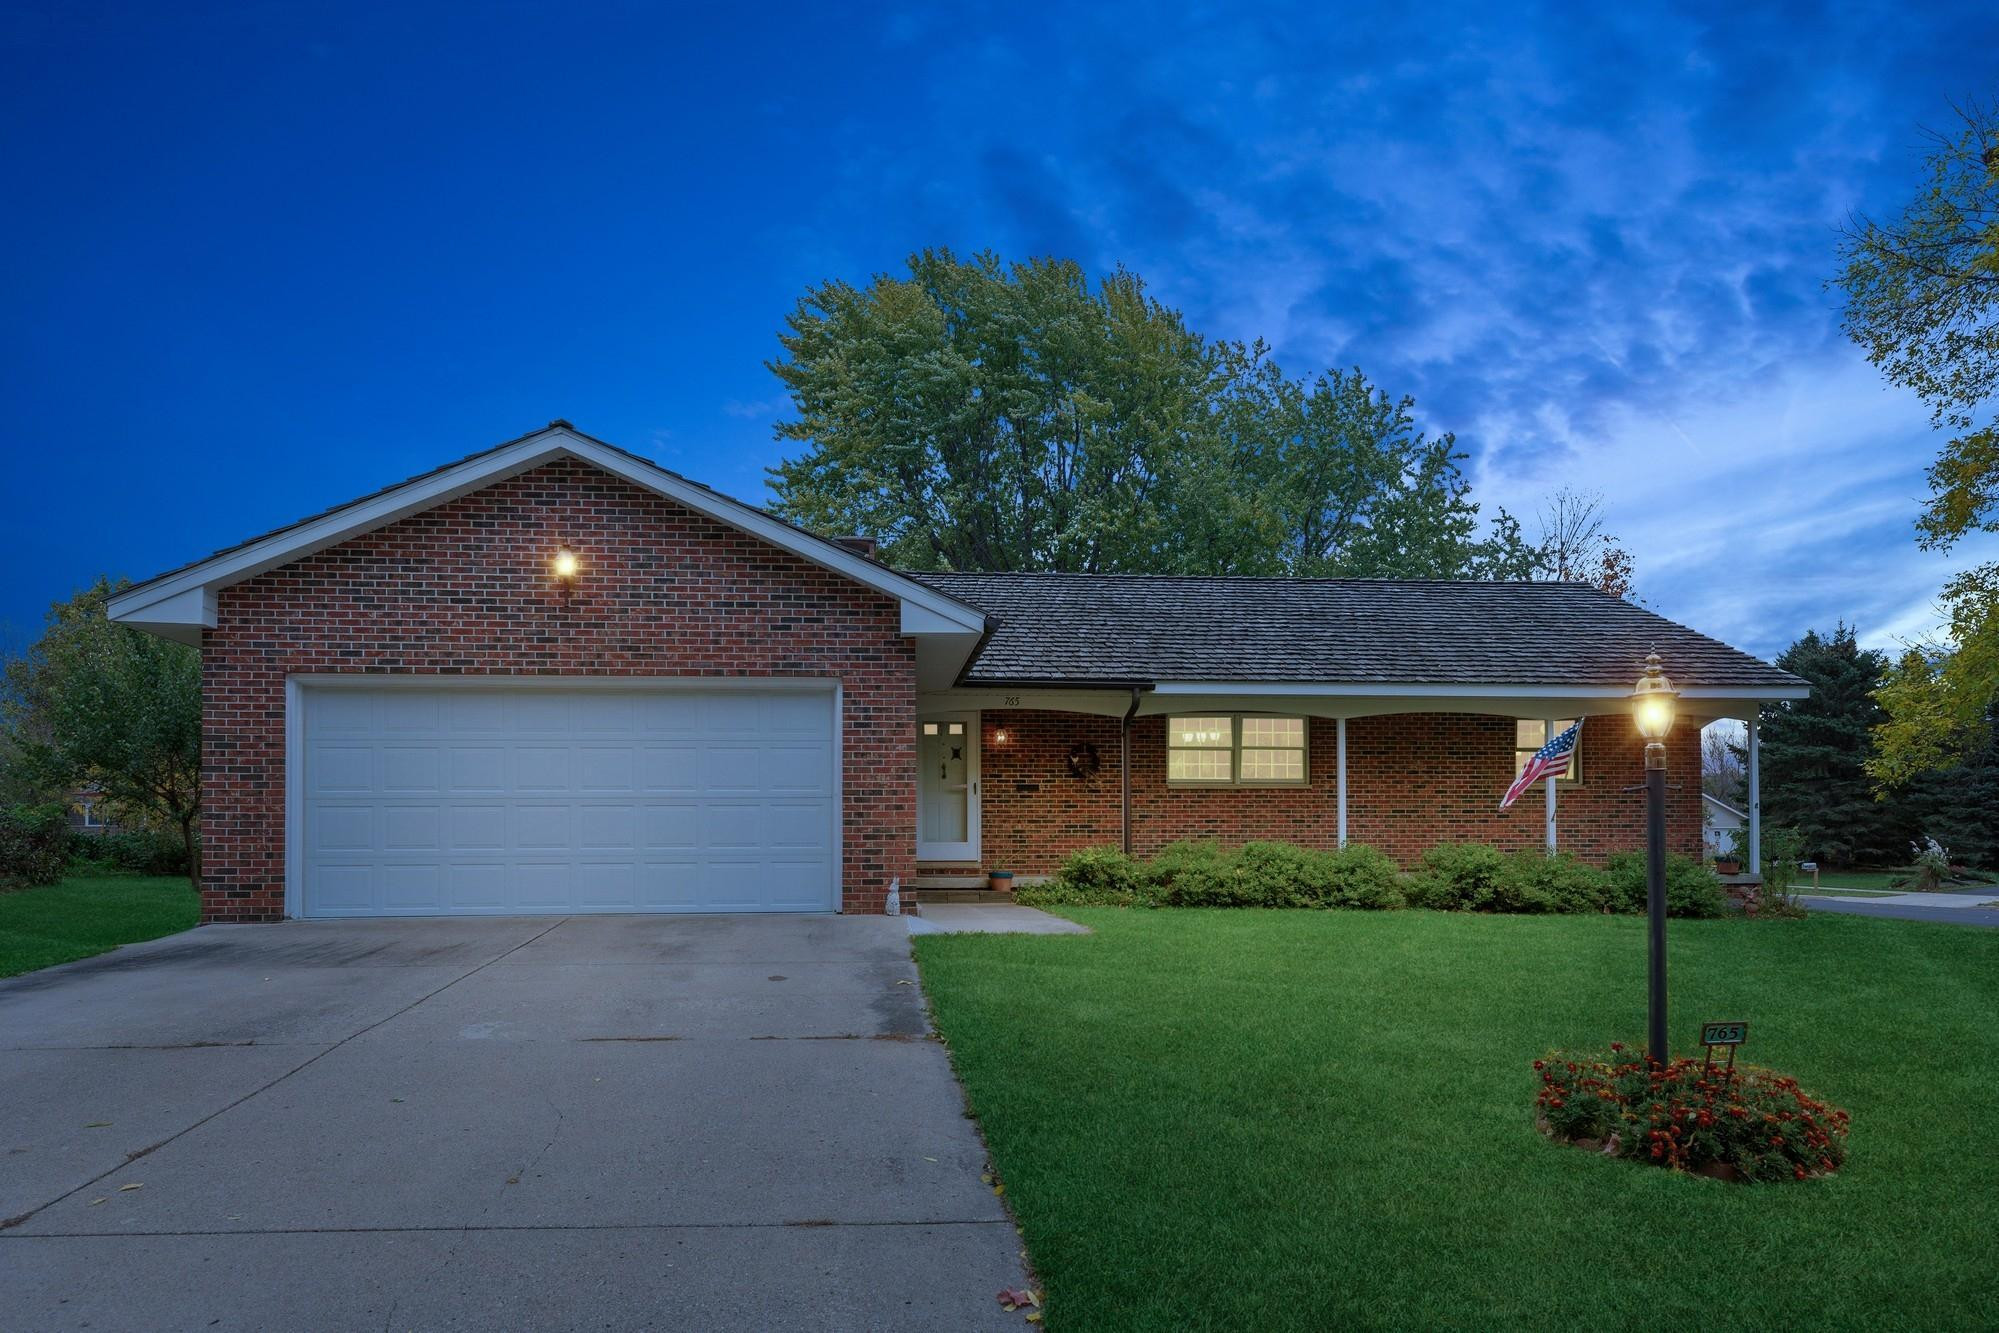 Welcome to this Ray Cox custom-built home with full brick surround, shake roof with gutters on an impeccable third acre lot with mature trees in the back.